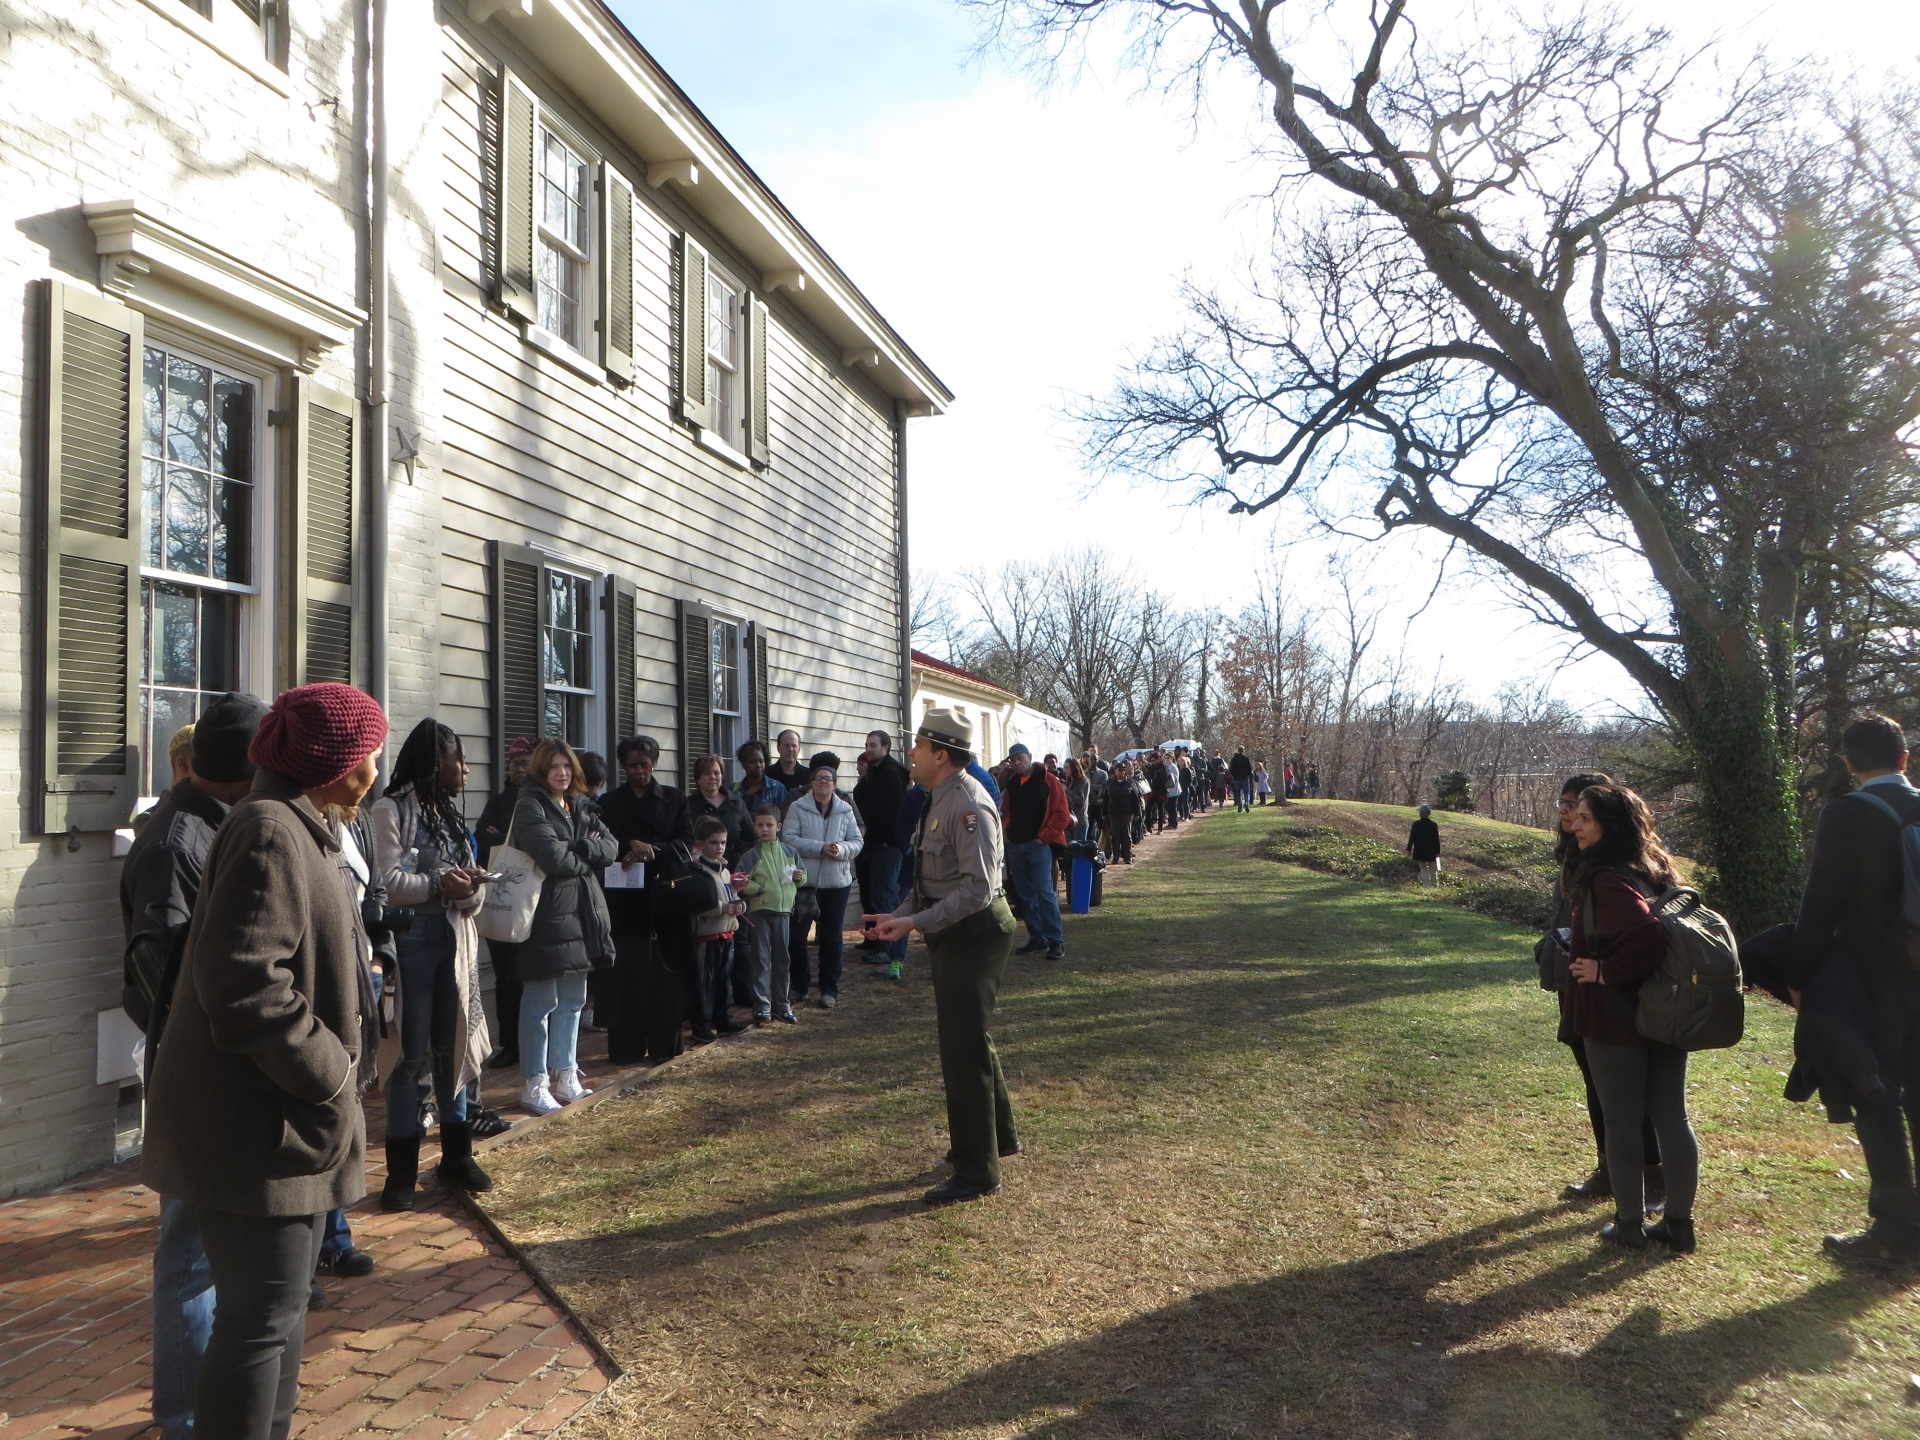 A National Park Service ranger describes Frederick Douglass to those waiting in line to see his home on the 200th anniversary of Douglass's birth